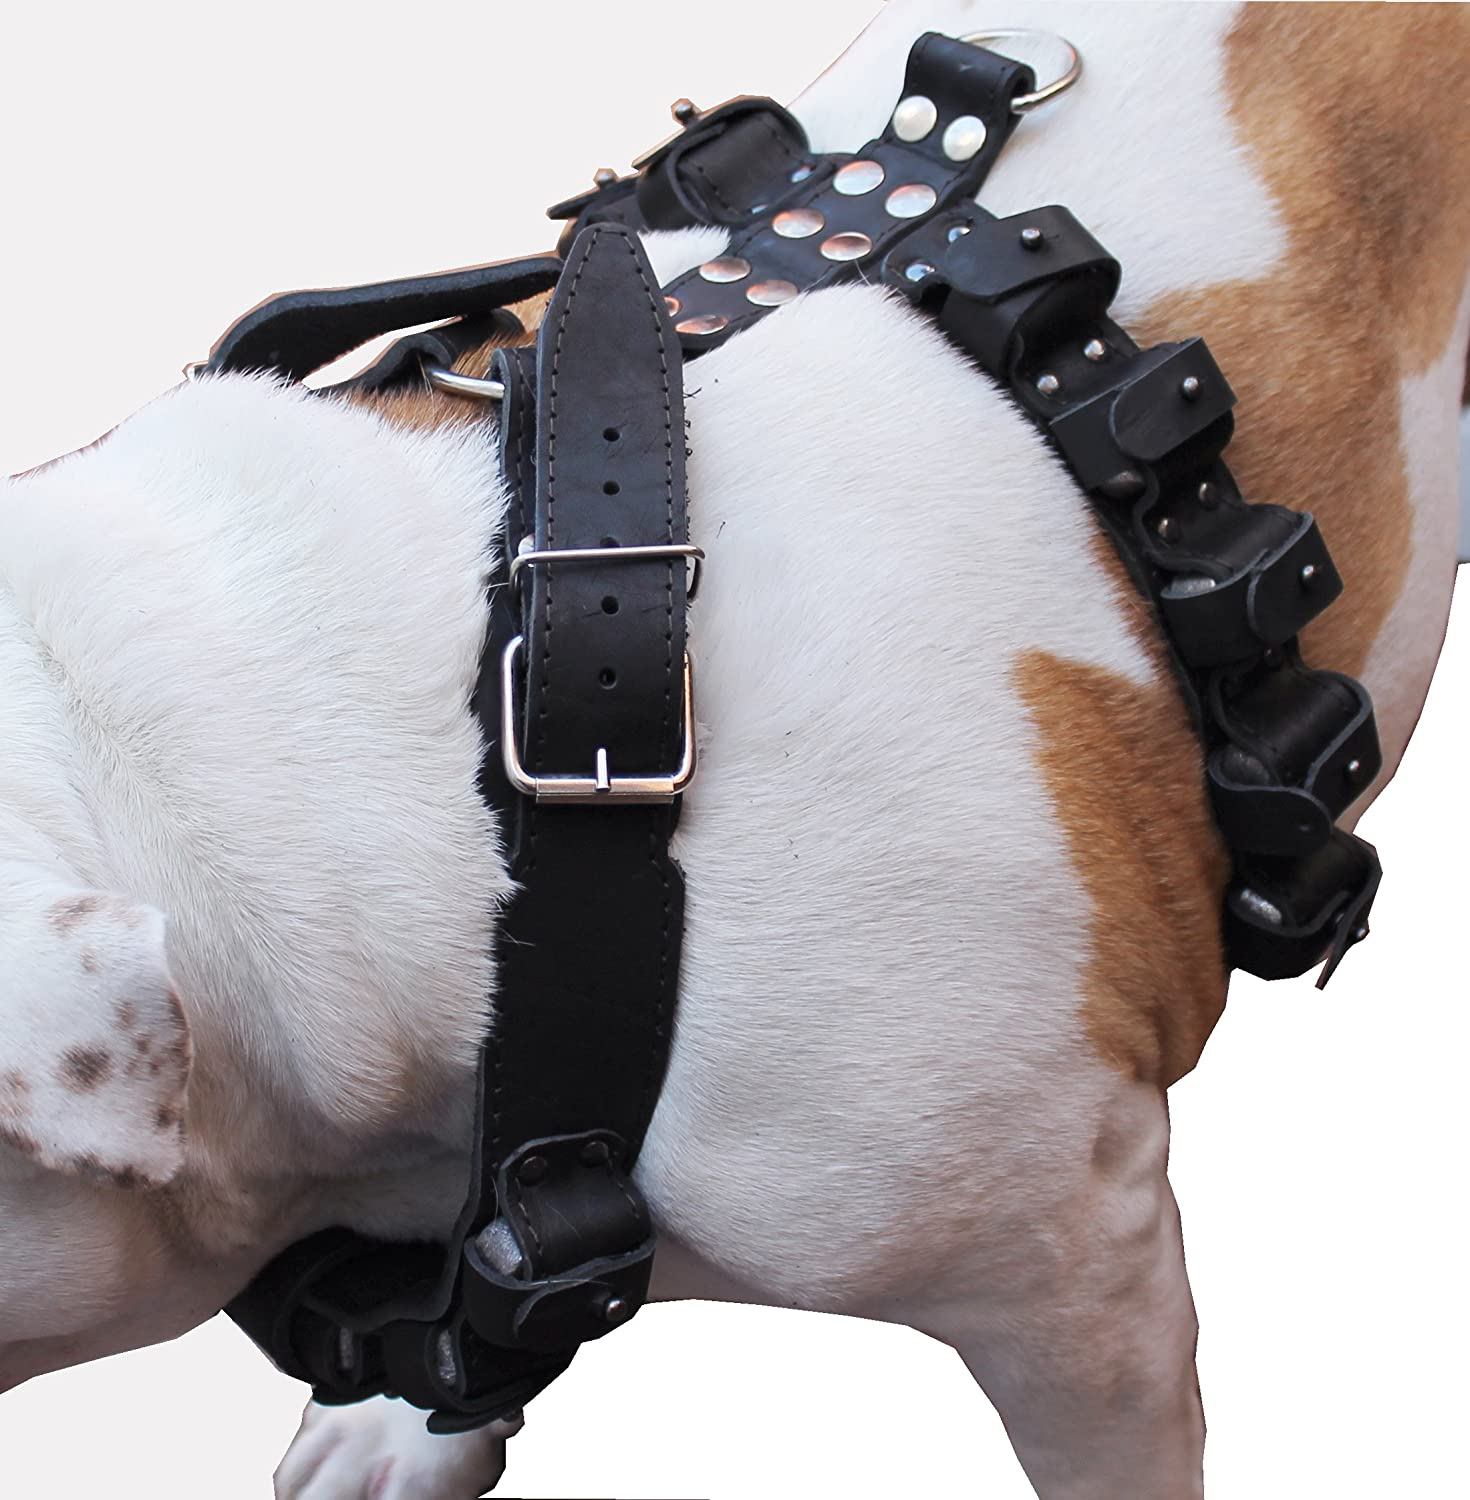 7 lbs Genuine Black Leather Weighted Dog Harness for Exercise and Training. Fits 35-40 Chest